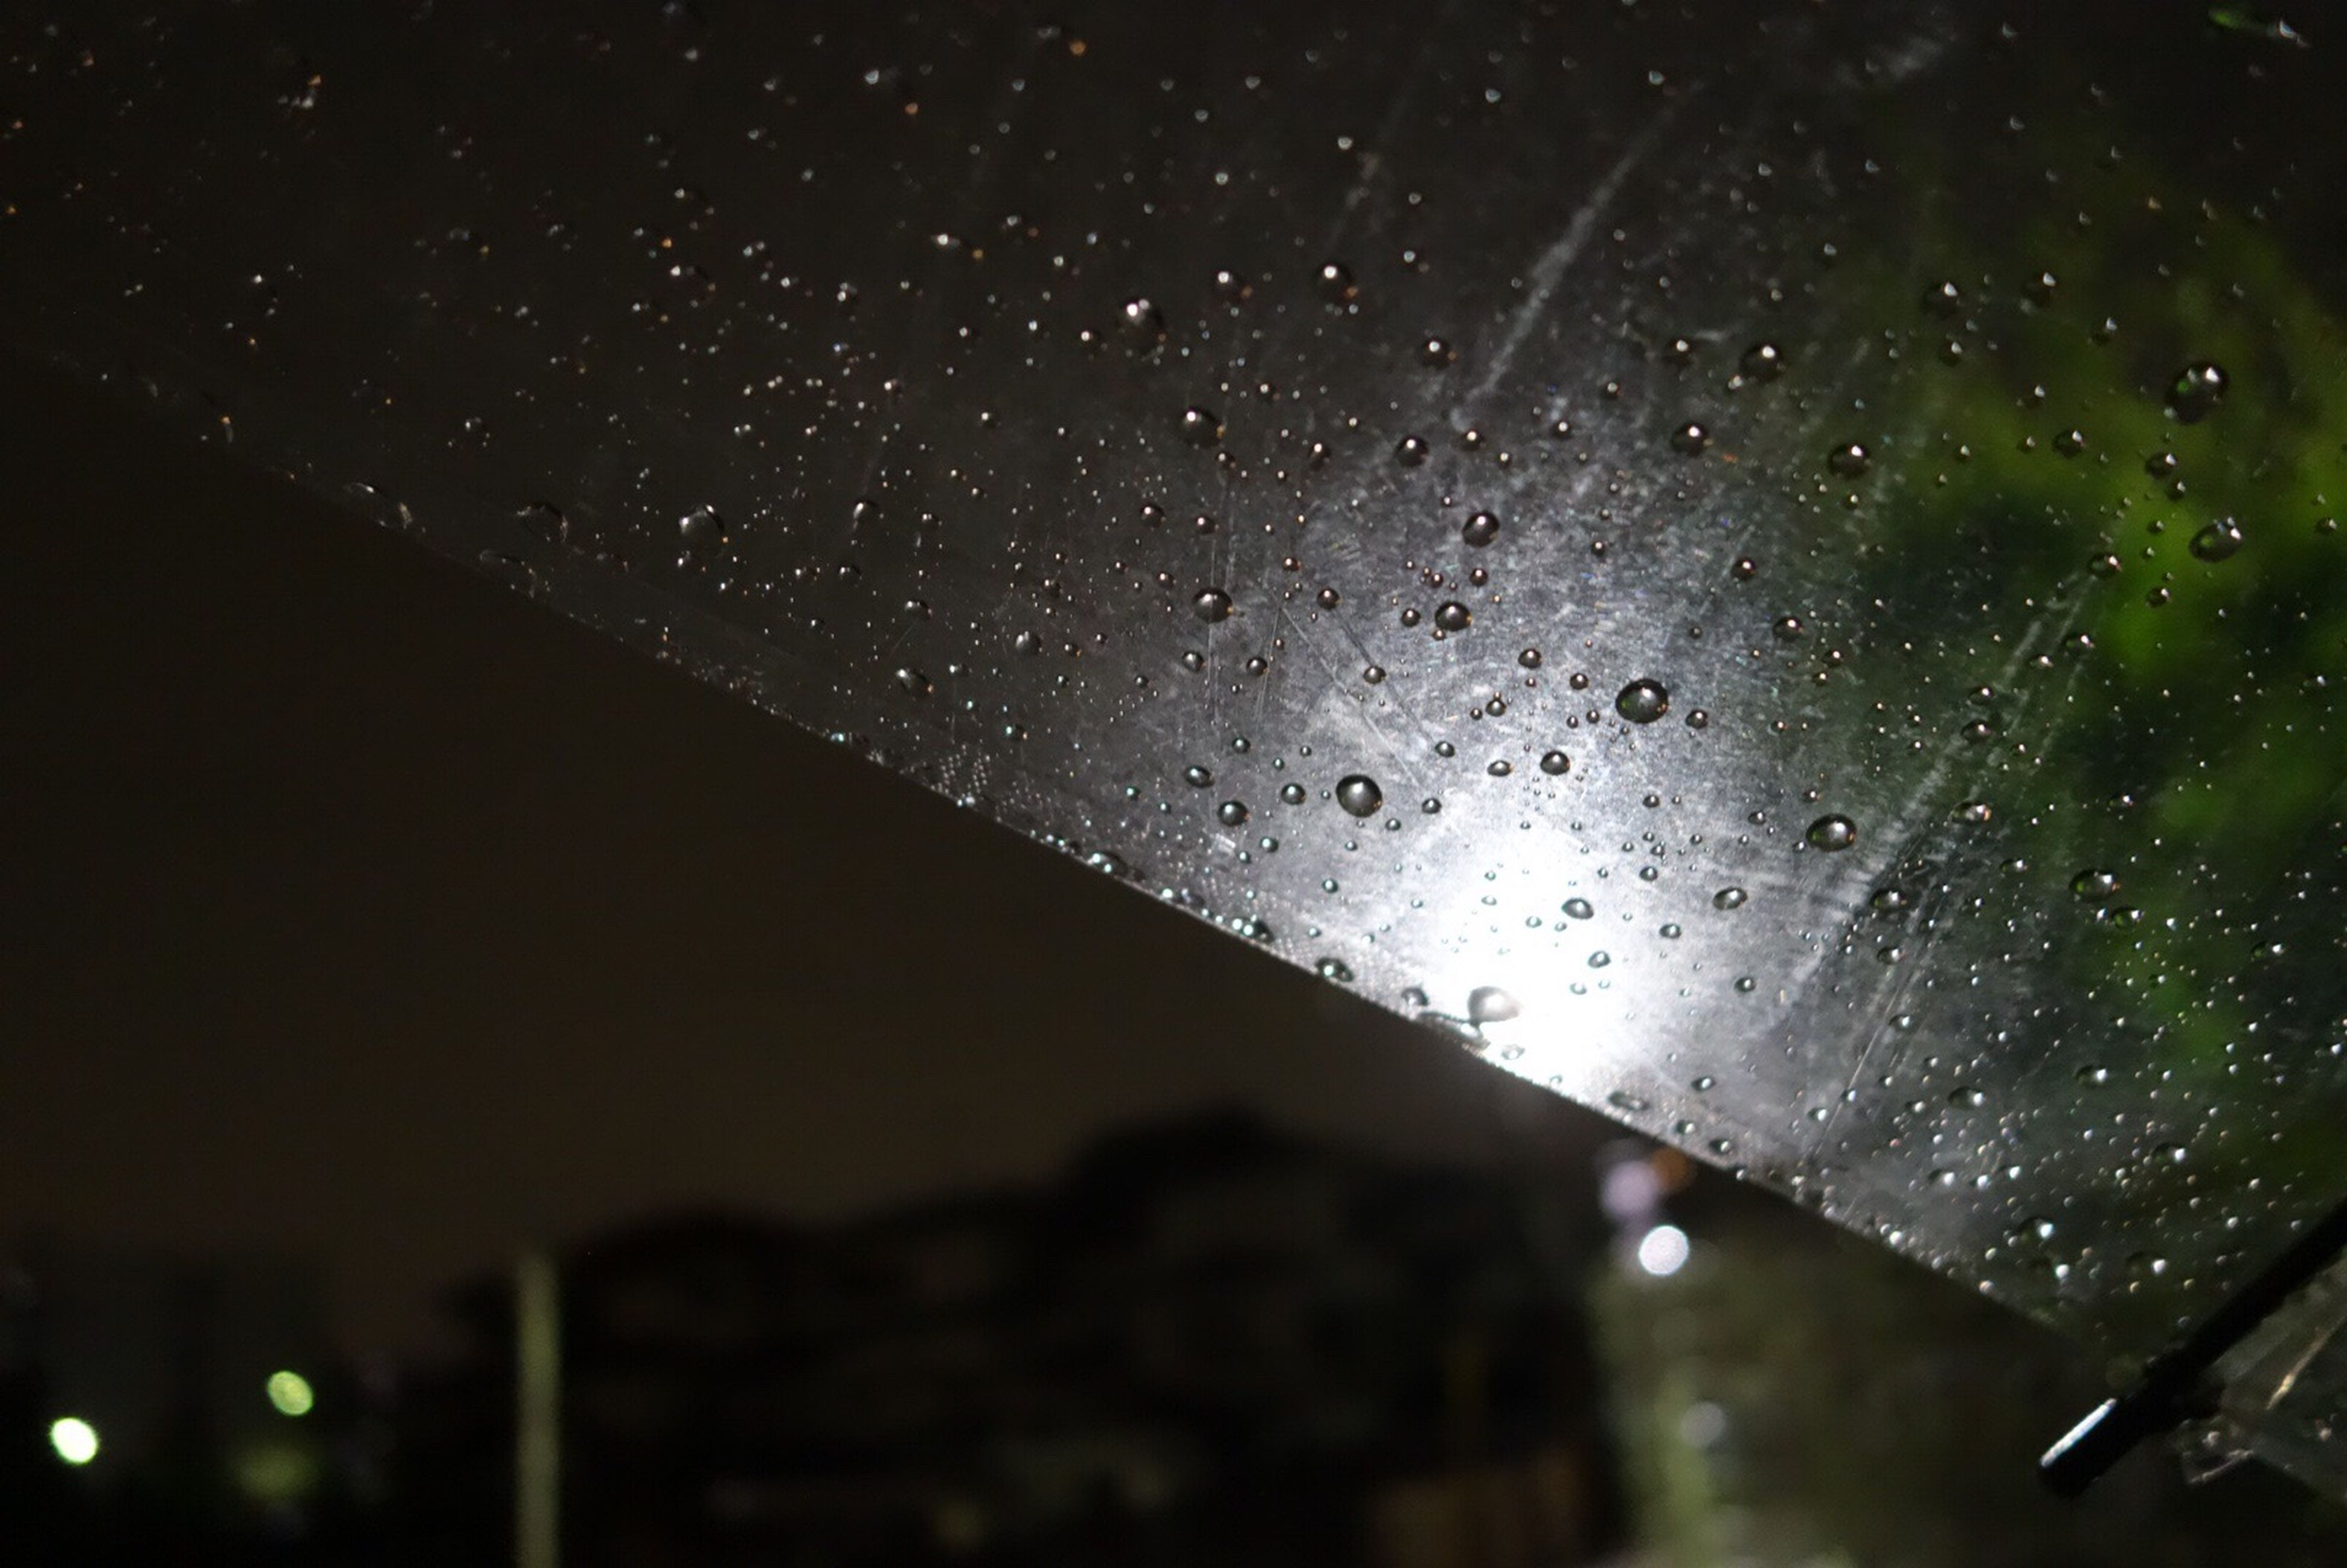 drop, glass - material, water, wet, window, rain, focus on foreground, rainy season, close-up, sky, raindrop, nature, no people, beauty in nature, outdoors, night